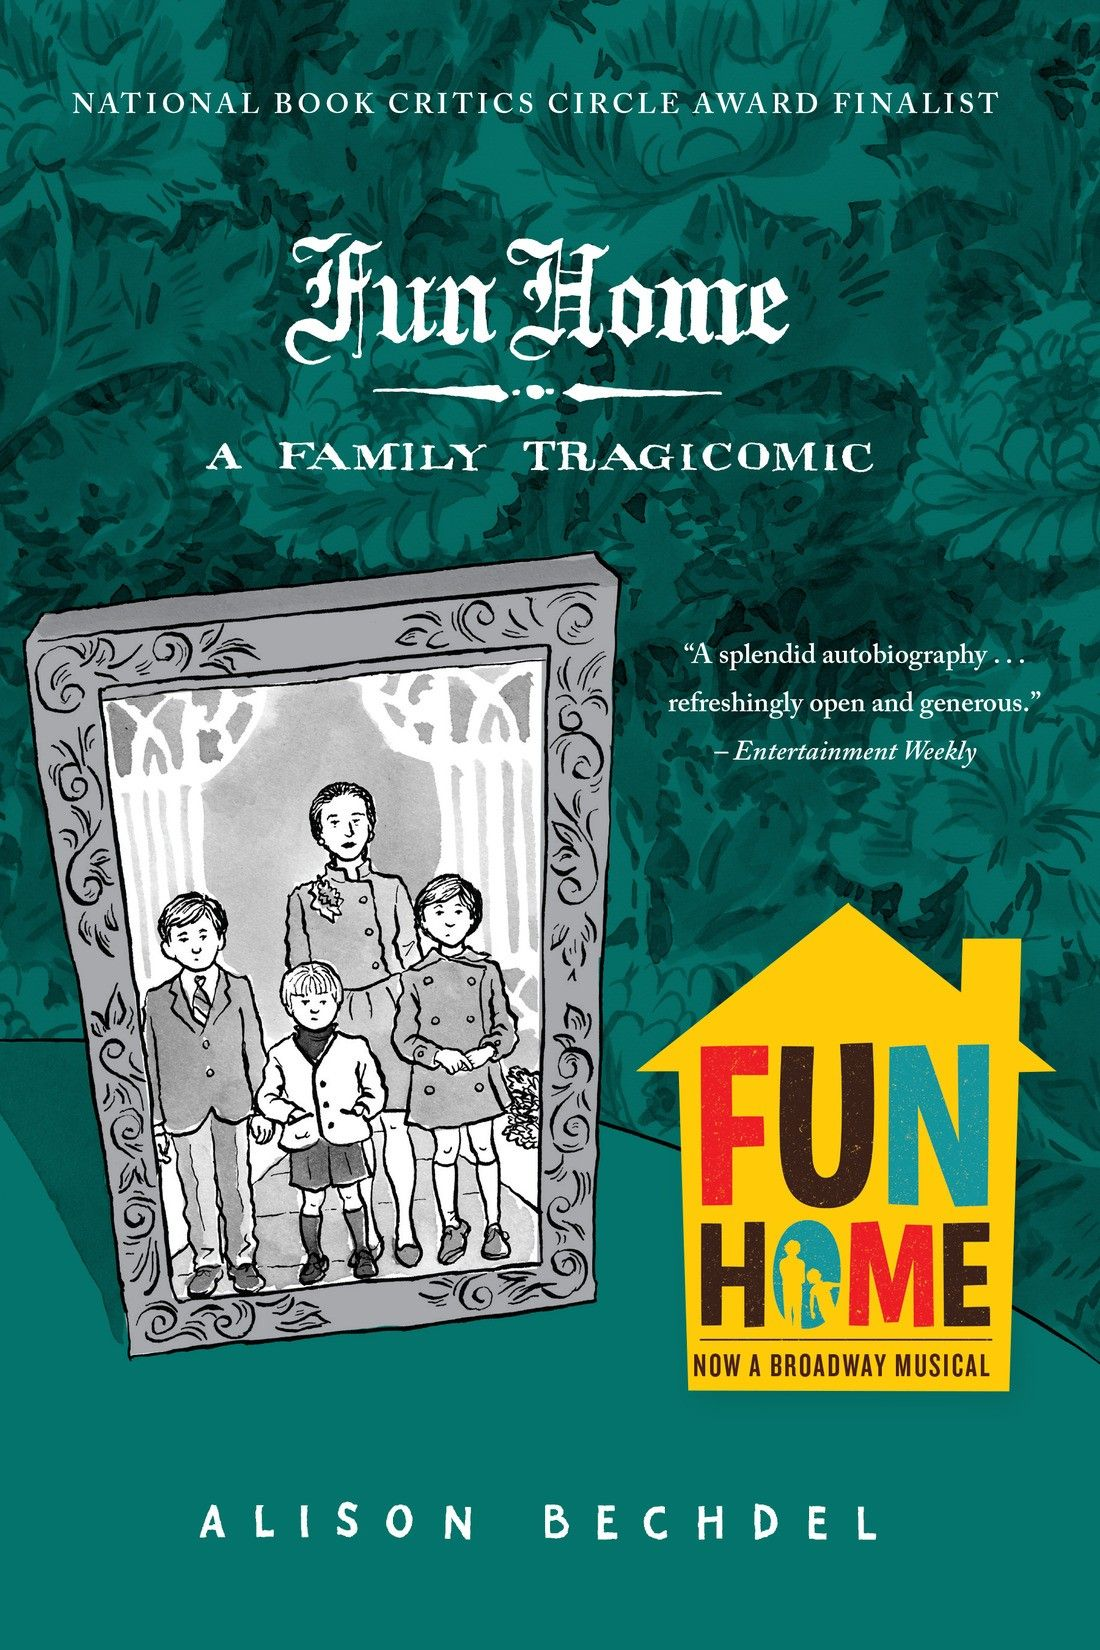 http://www.pastemagazine.com/articles/funhomeholiday.jpg